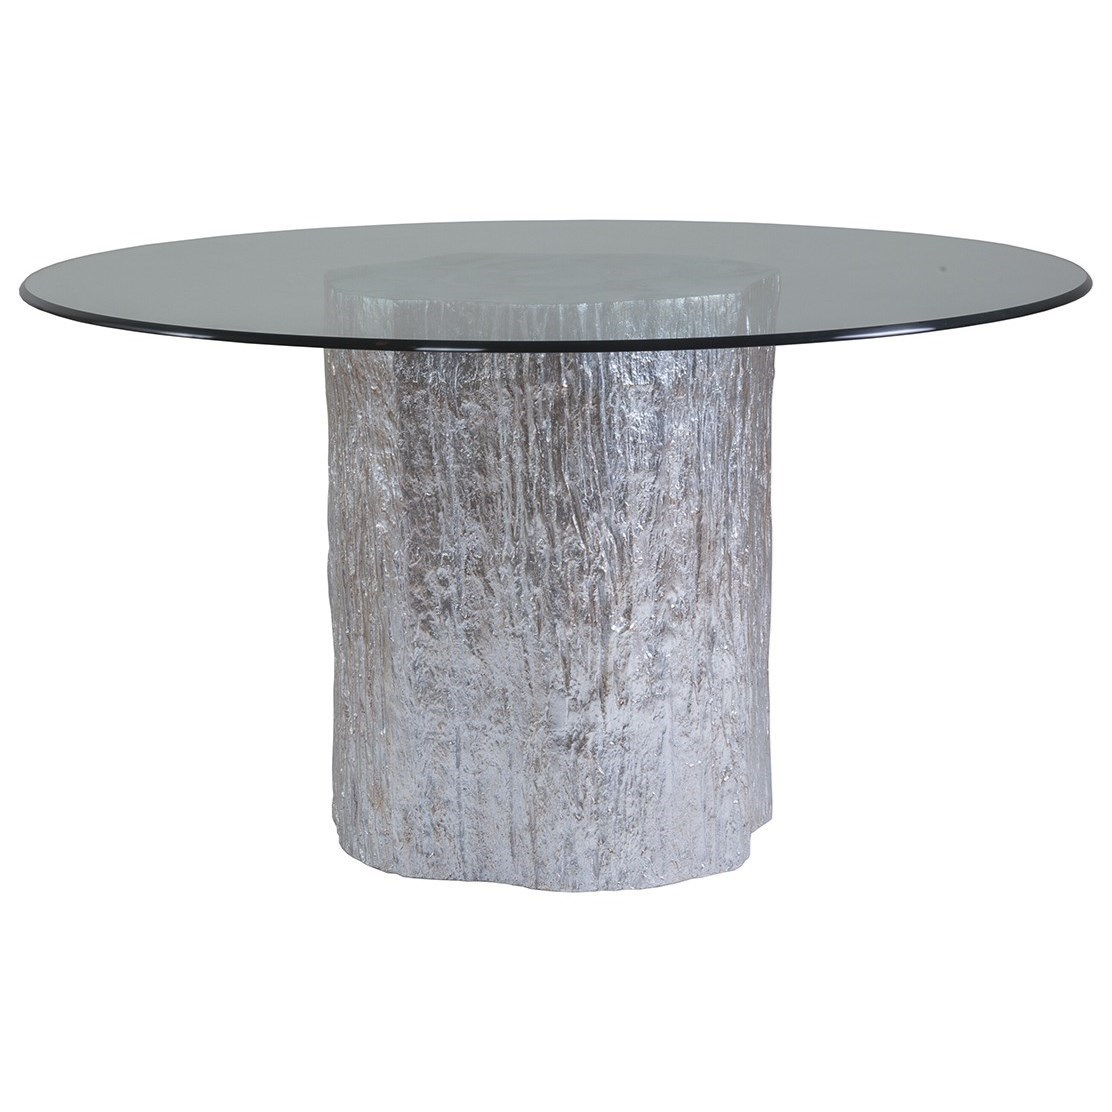 Trunk Segment Trunk Segment Round Dining Table With Glass  by Artistica at Baer's Furniture